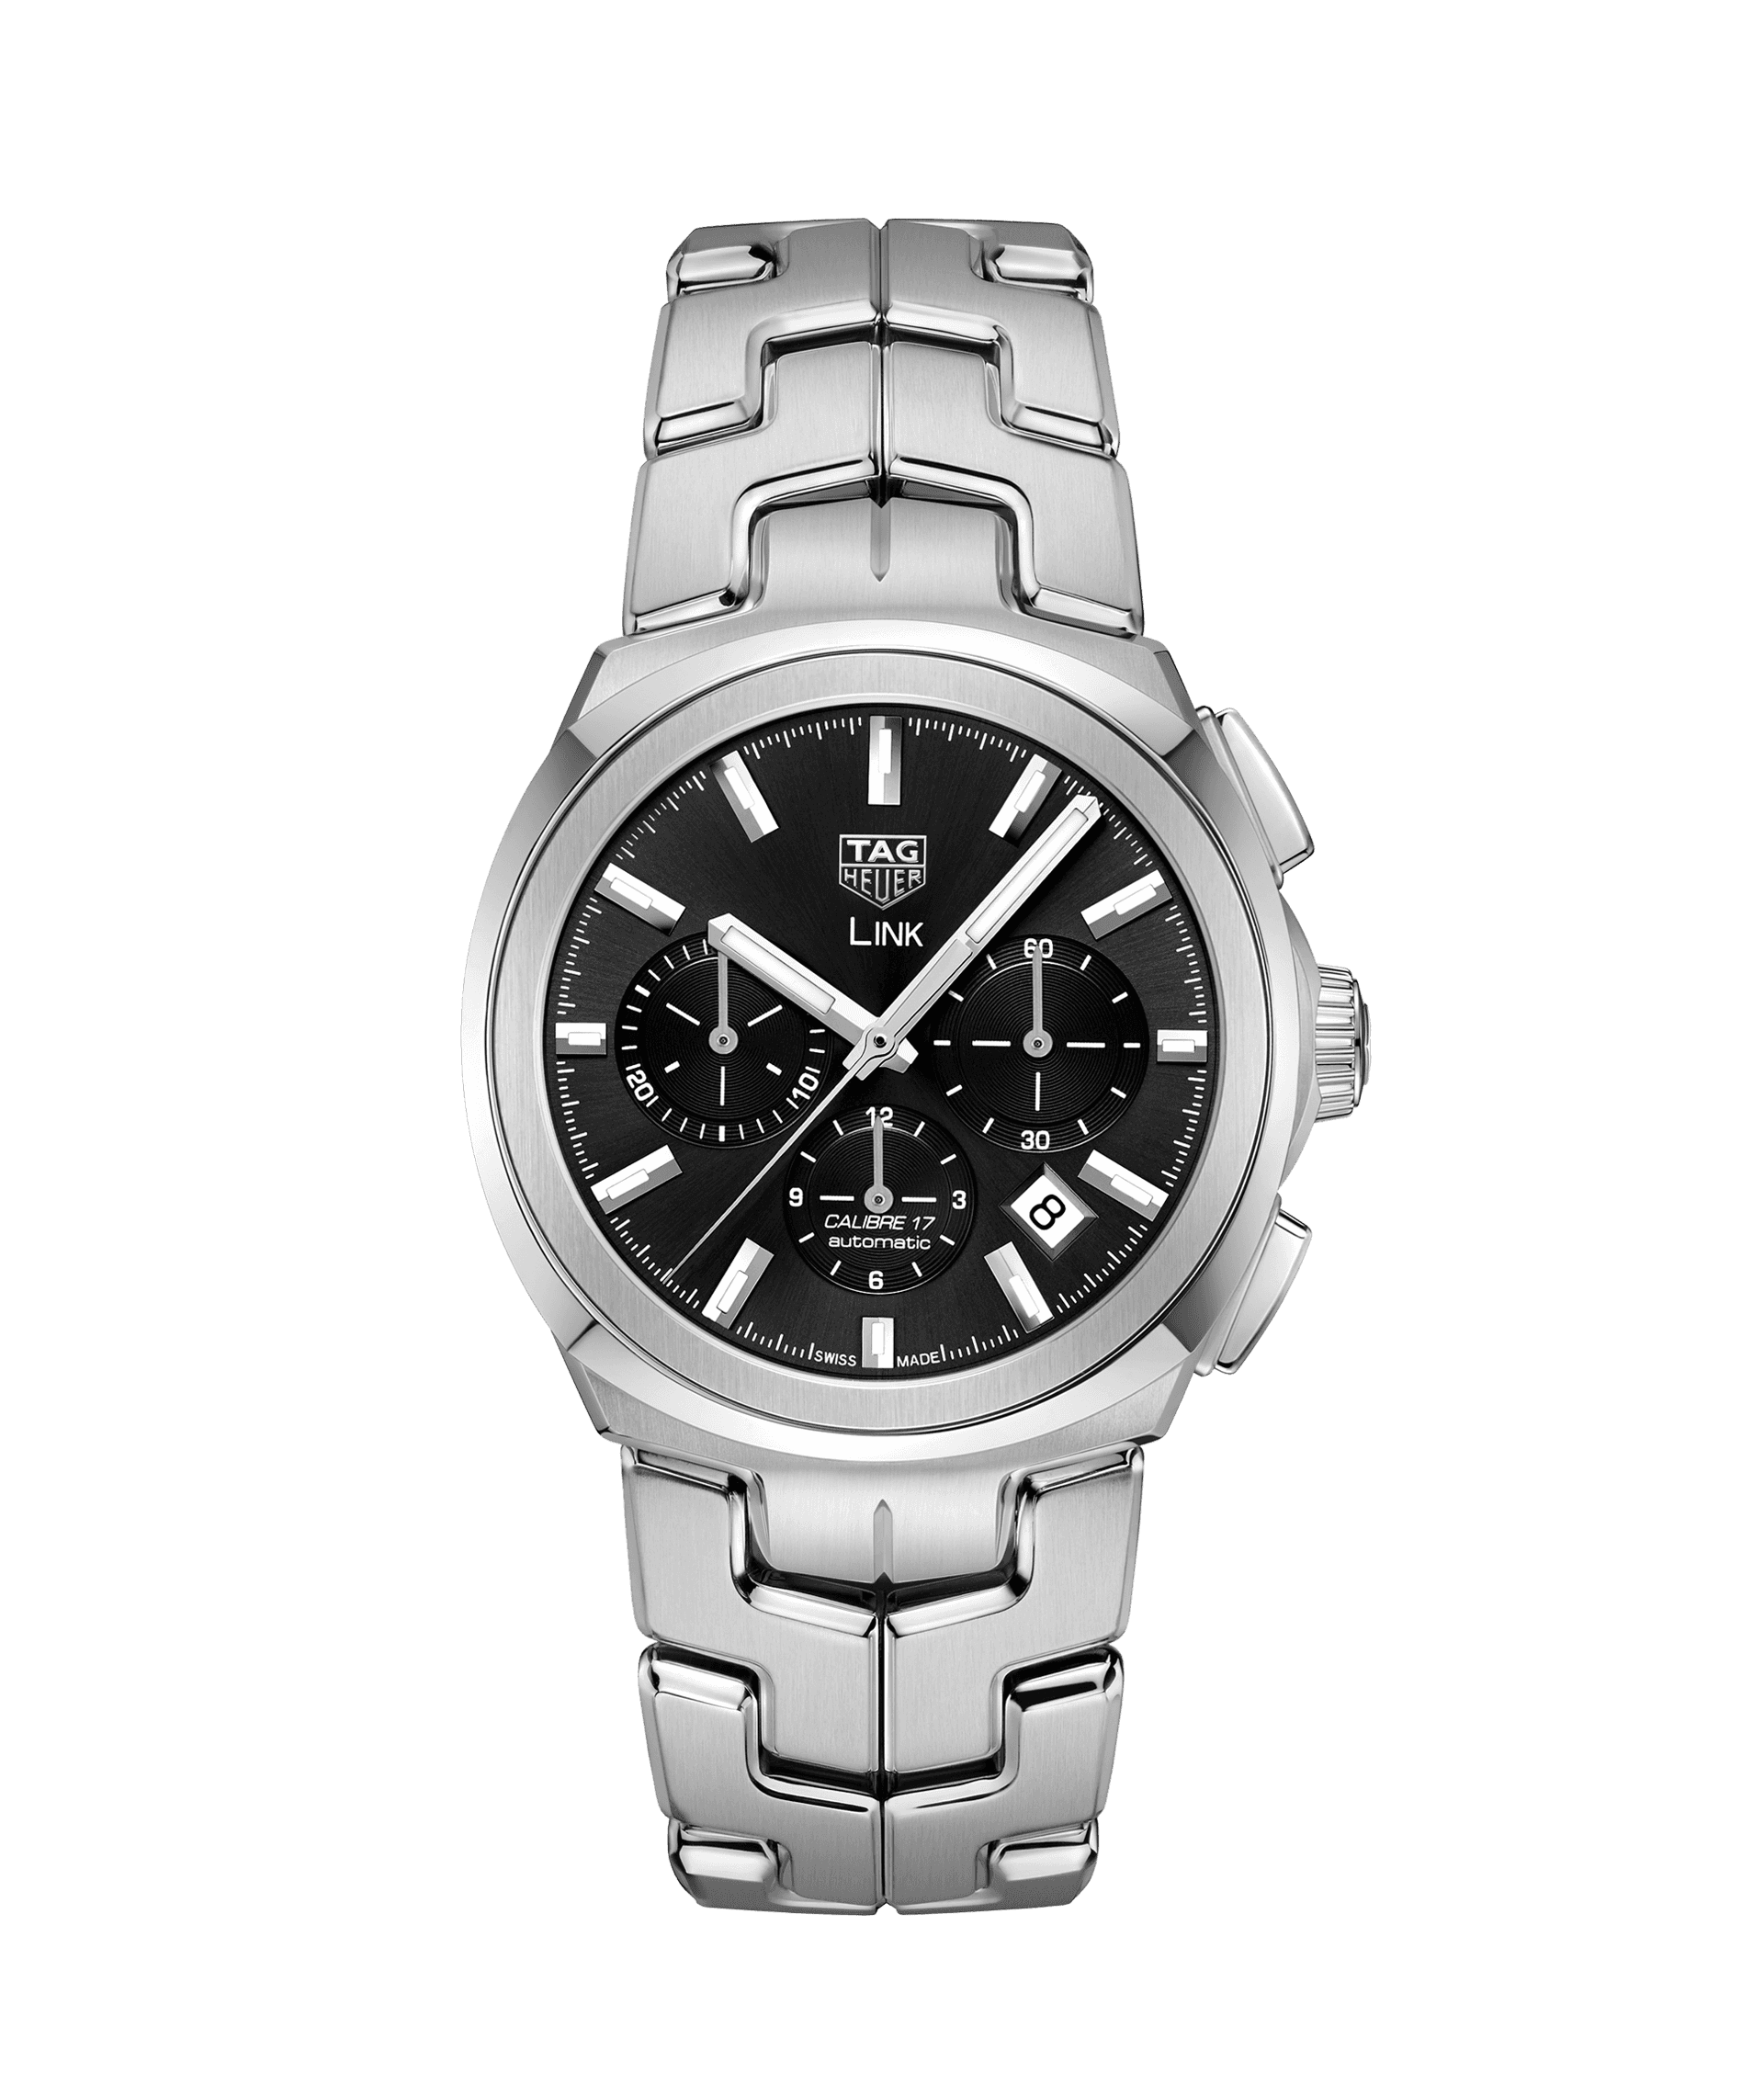 TAG HEUER LINK CALIBRE 17 AUTOMATIC 100 m - 41mm - CBC2110.BA0603